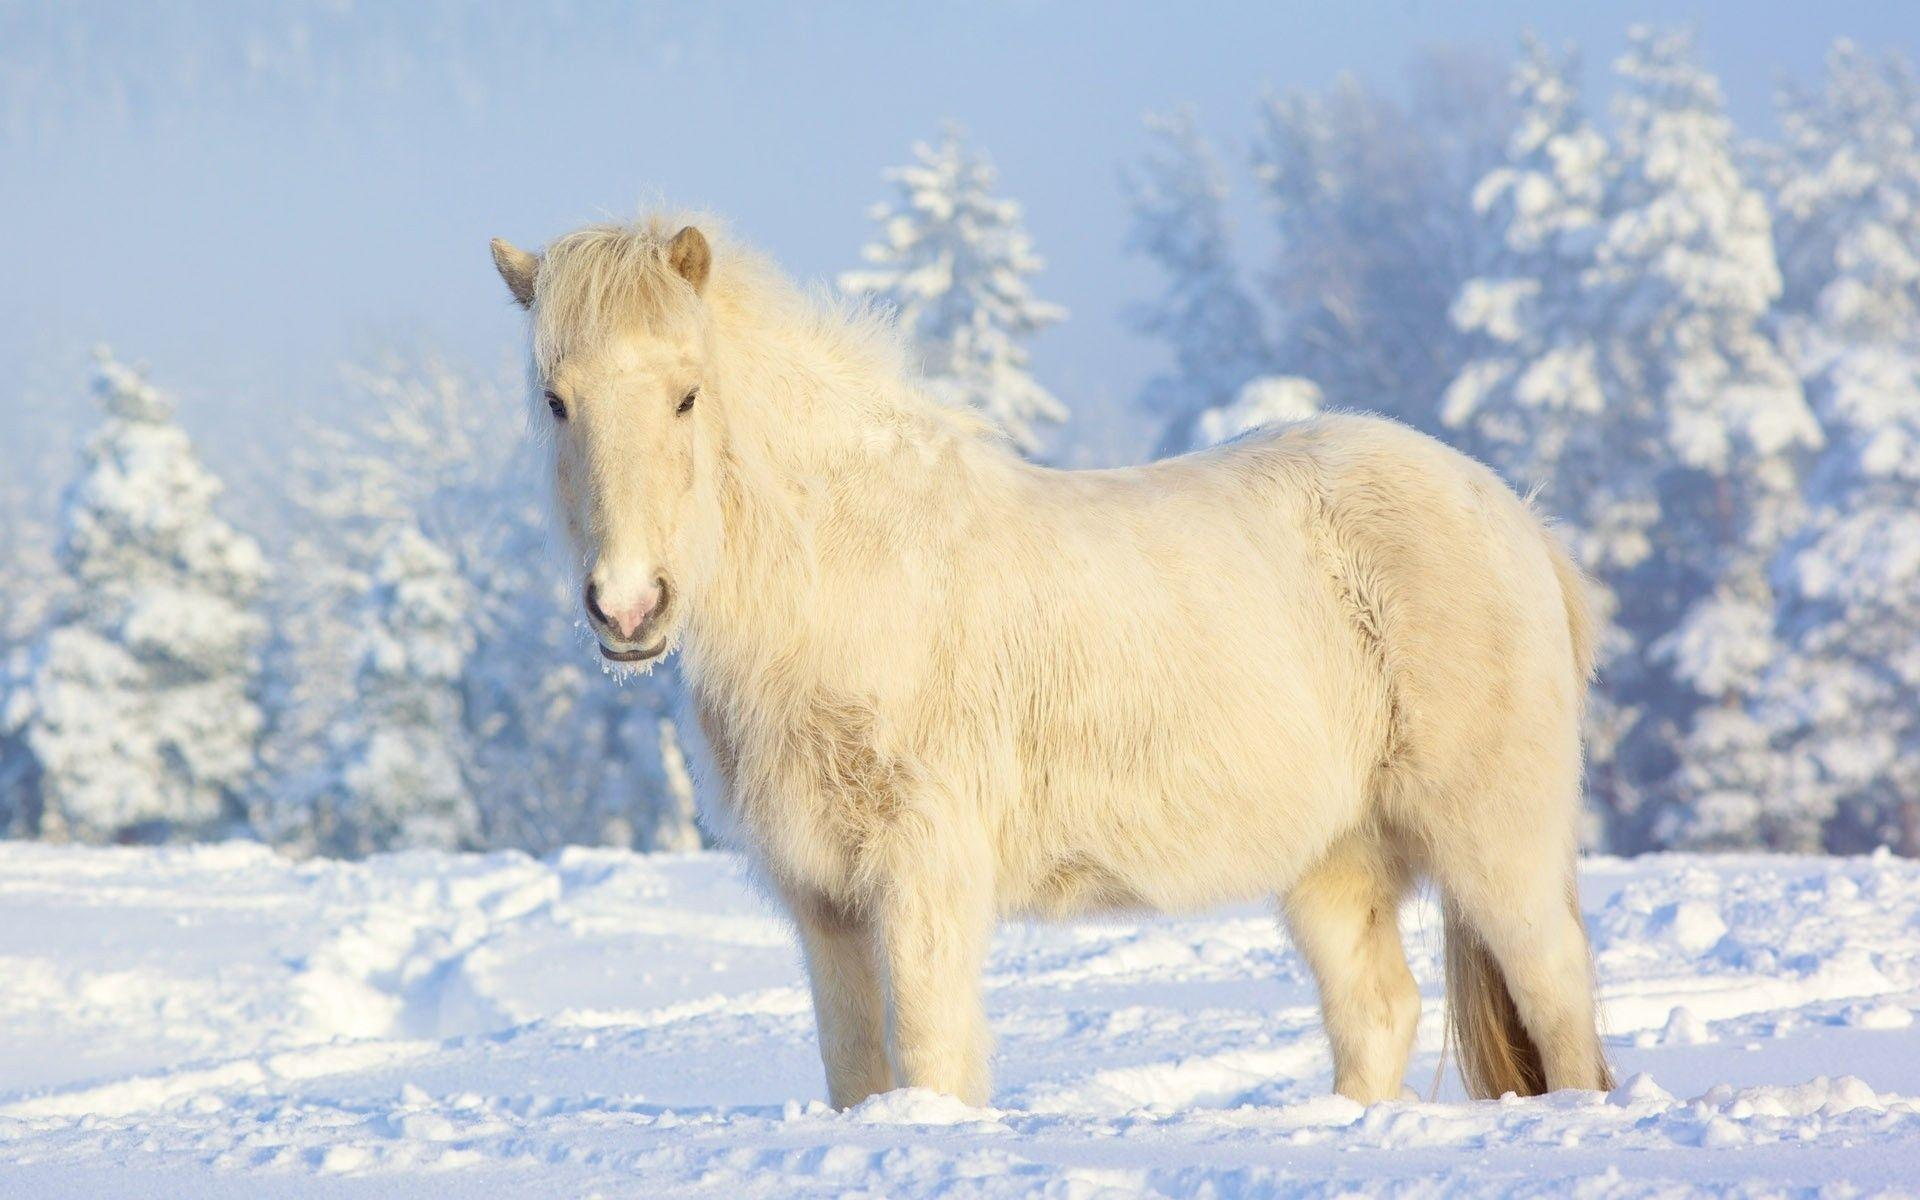 Beautiful White Horse Wallpapers